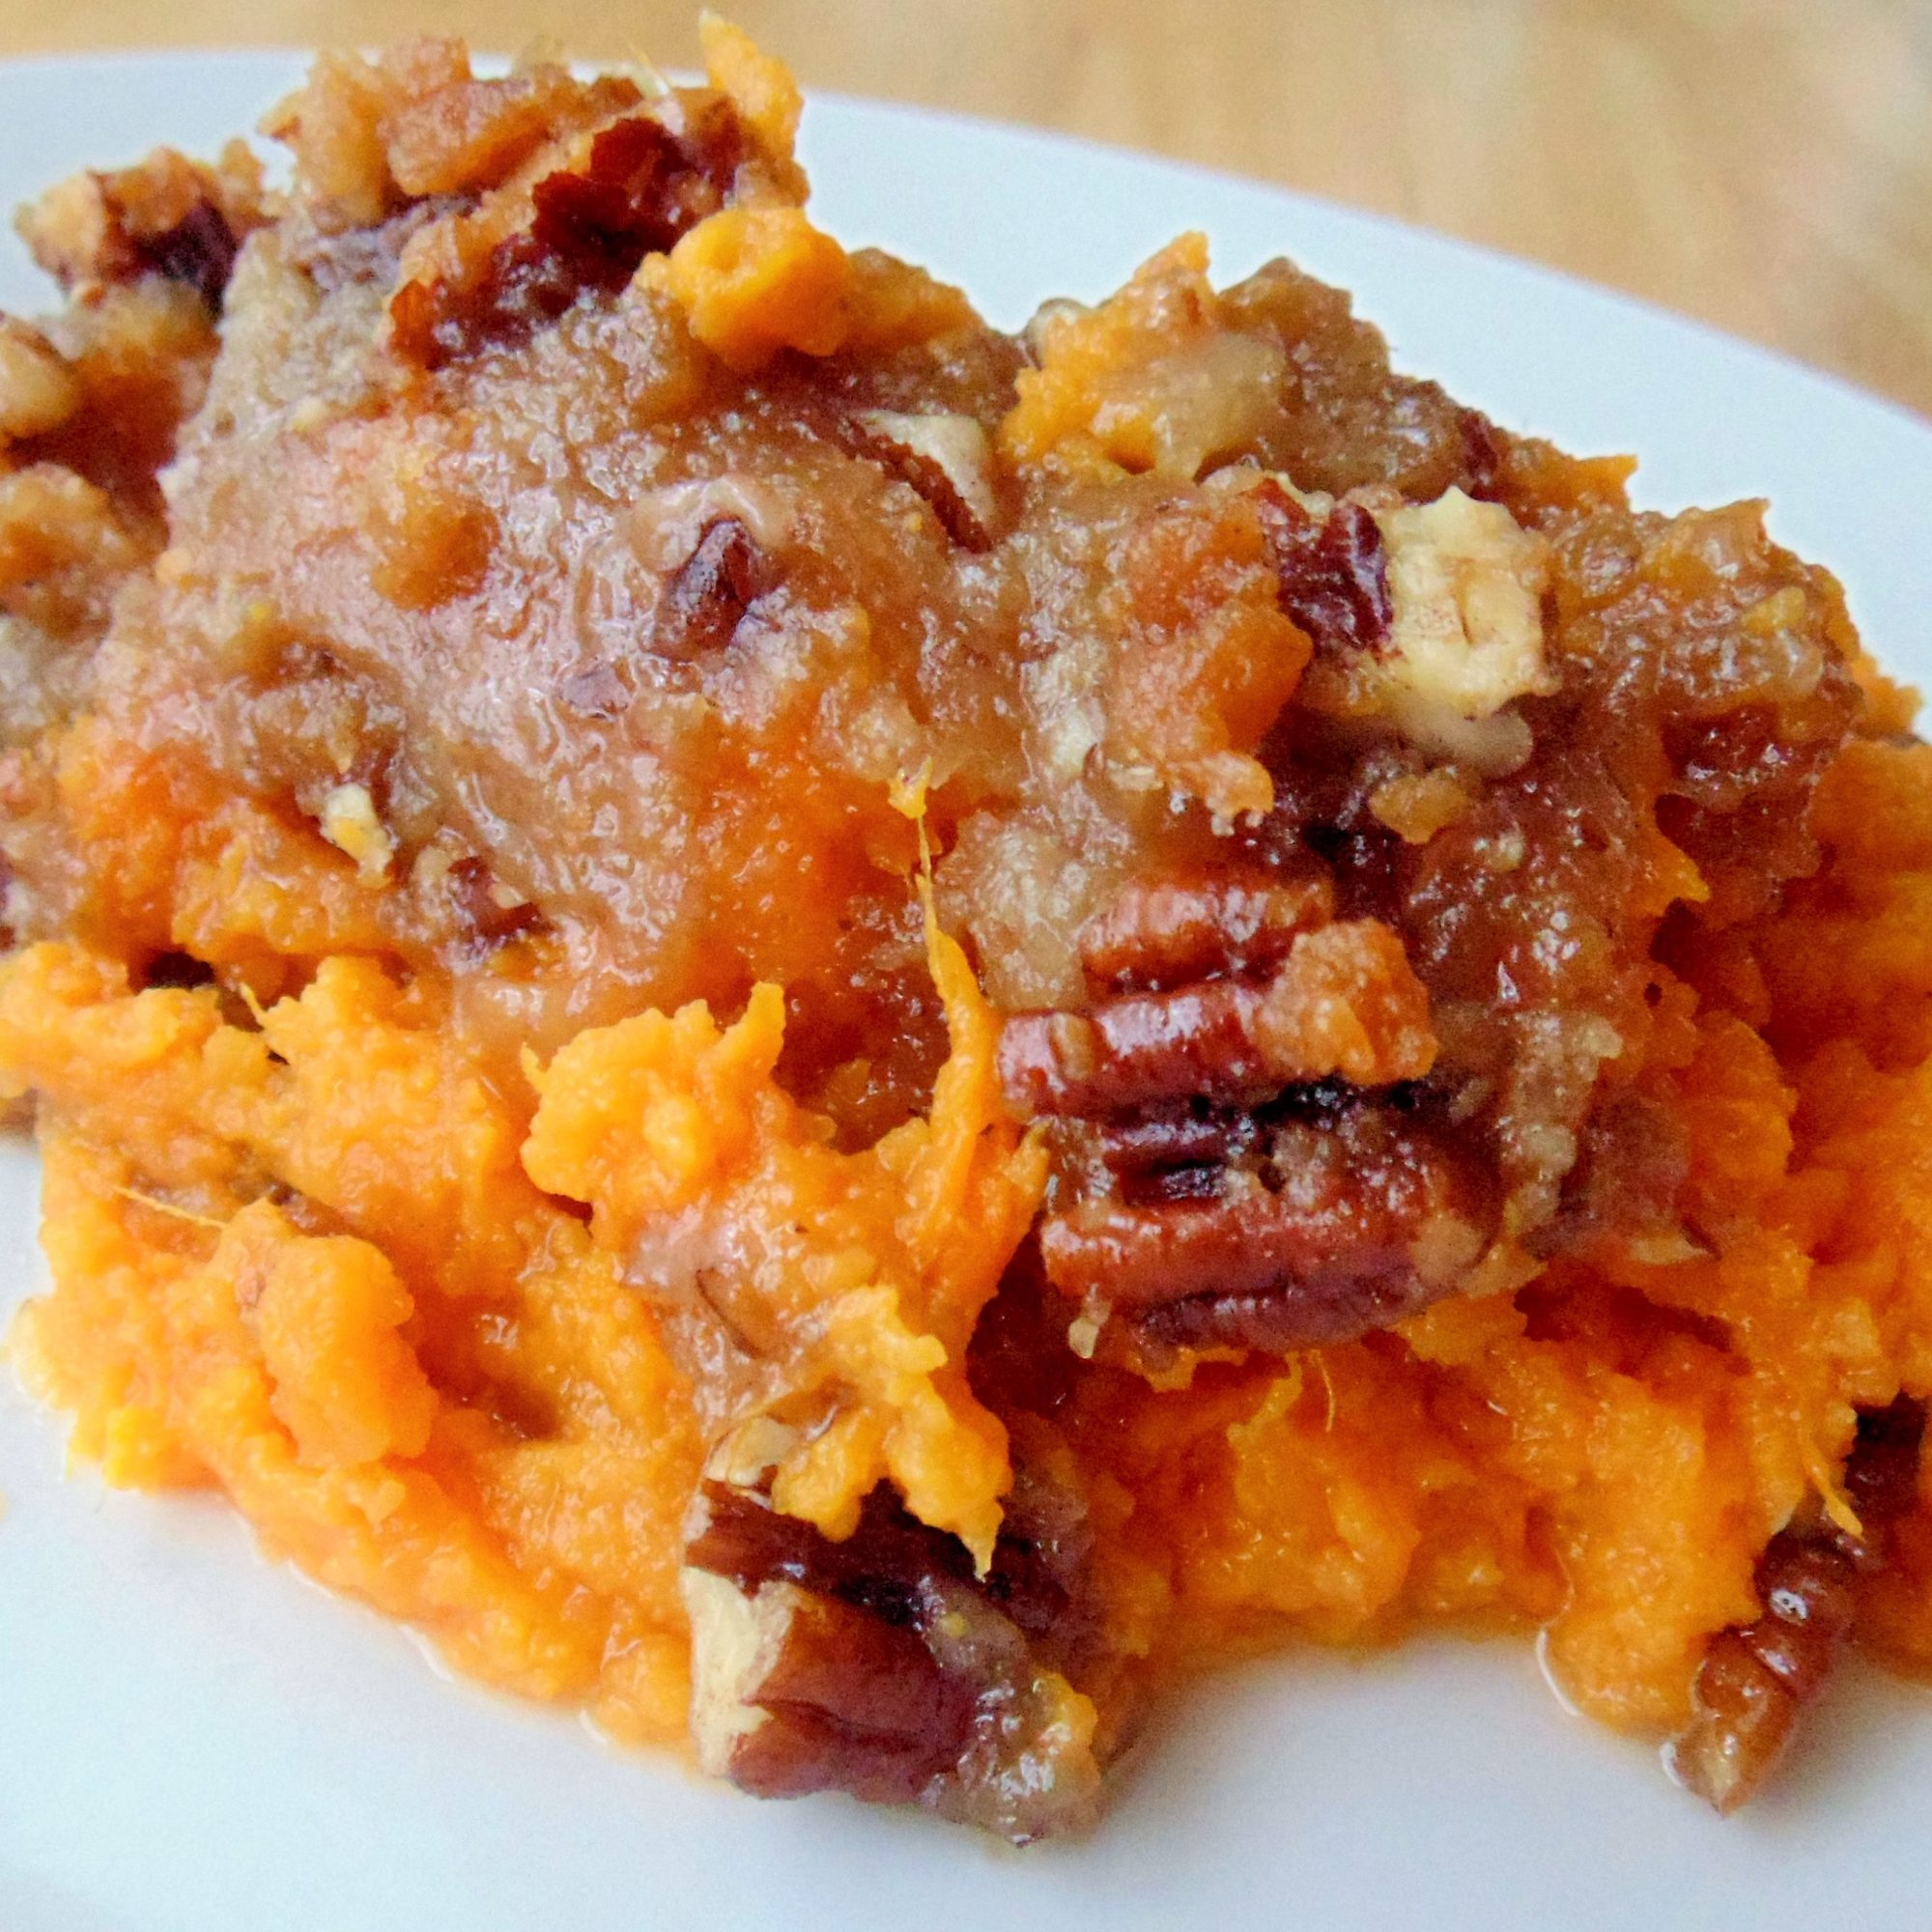 serving of sweet potato casserole with pecan streusel topping